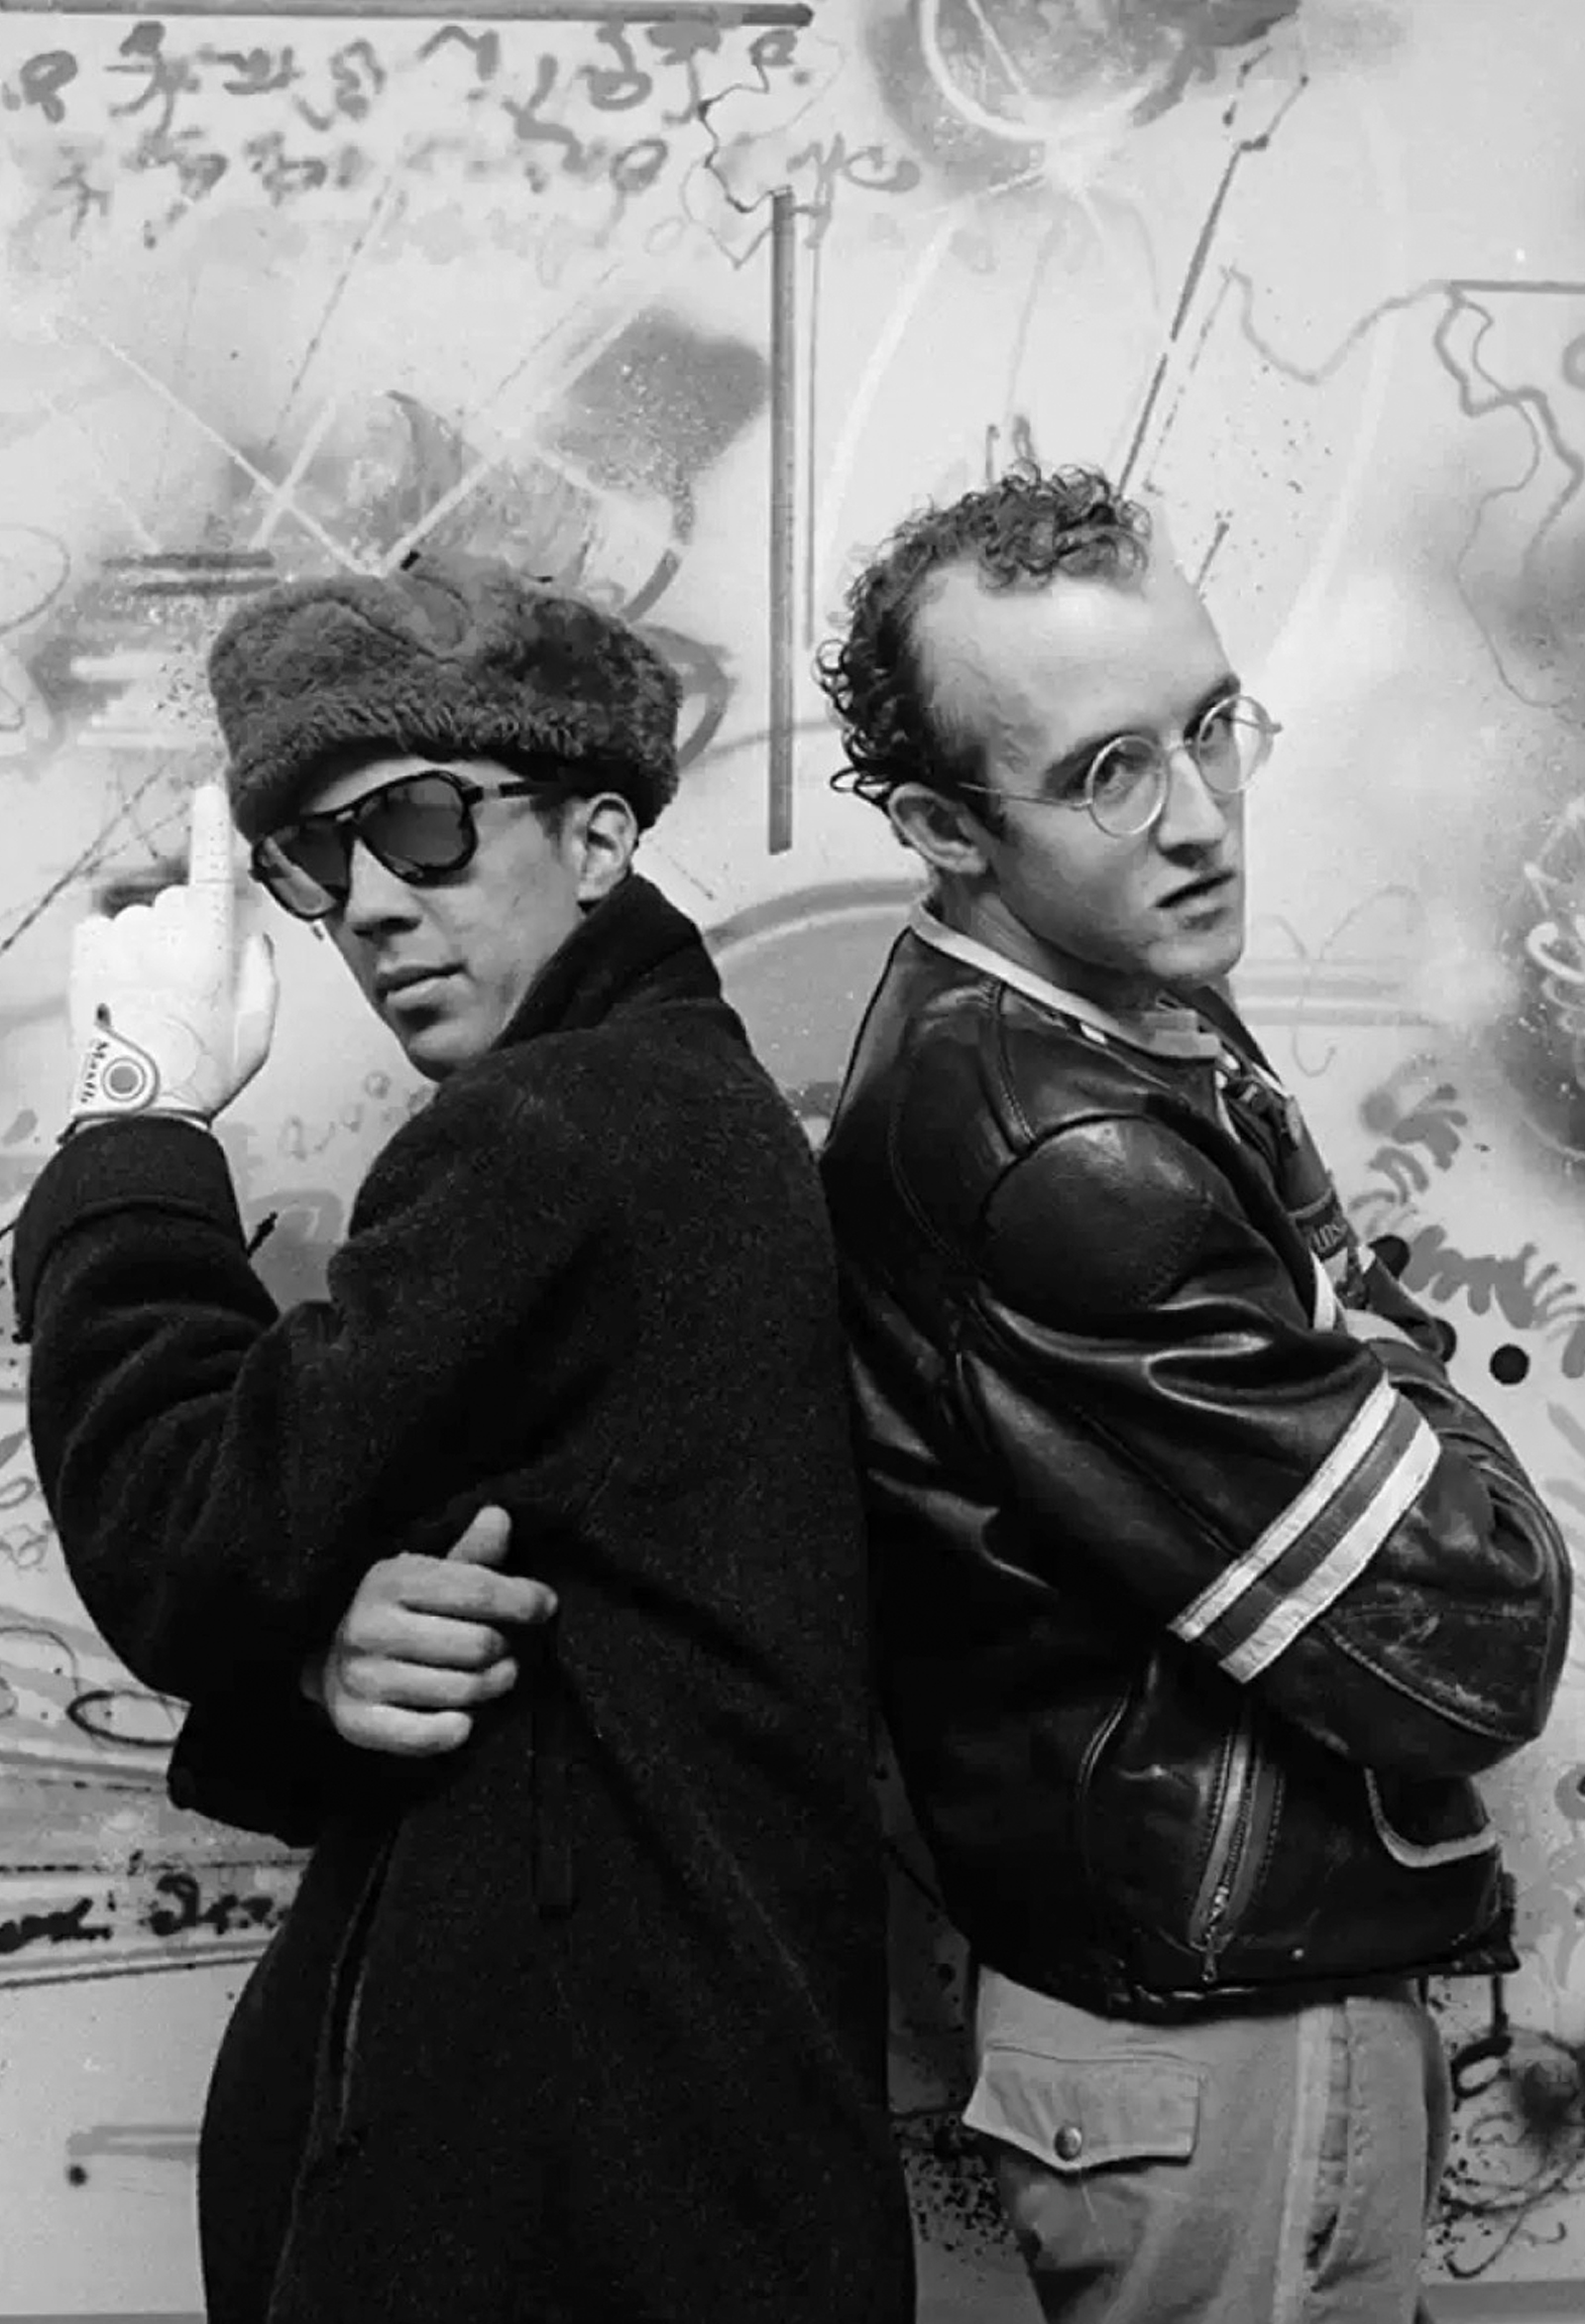 Graffiti artist Futura 2000 on his opening night at Fun Gallery, with Keith Haring. Photo by the Sophie Bramly in 1983.